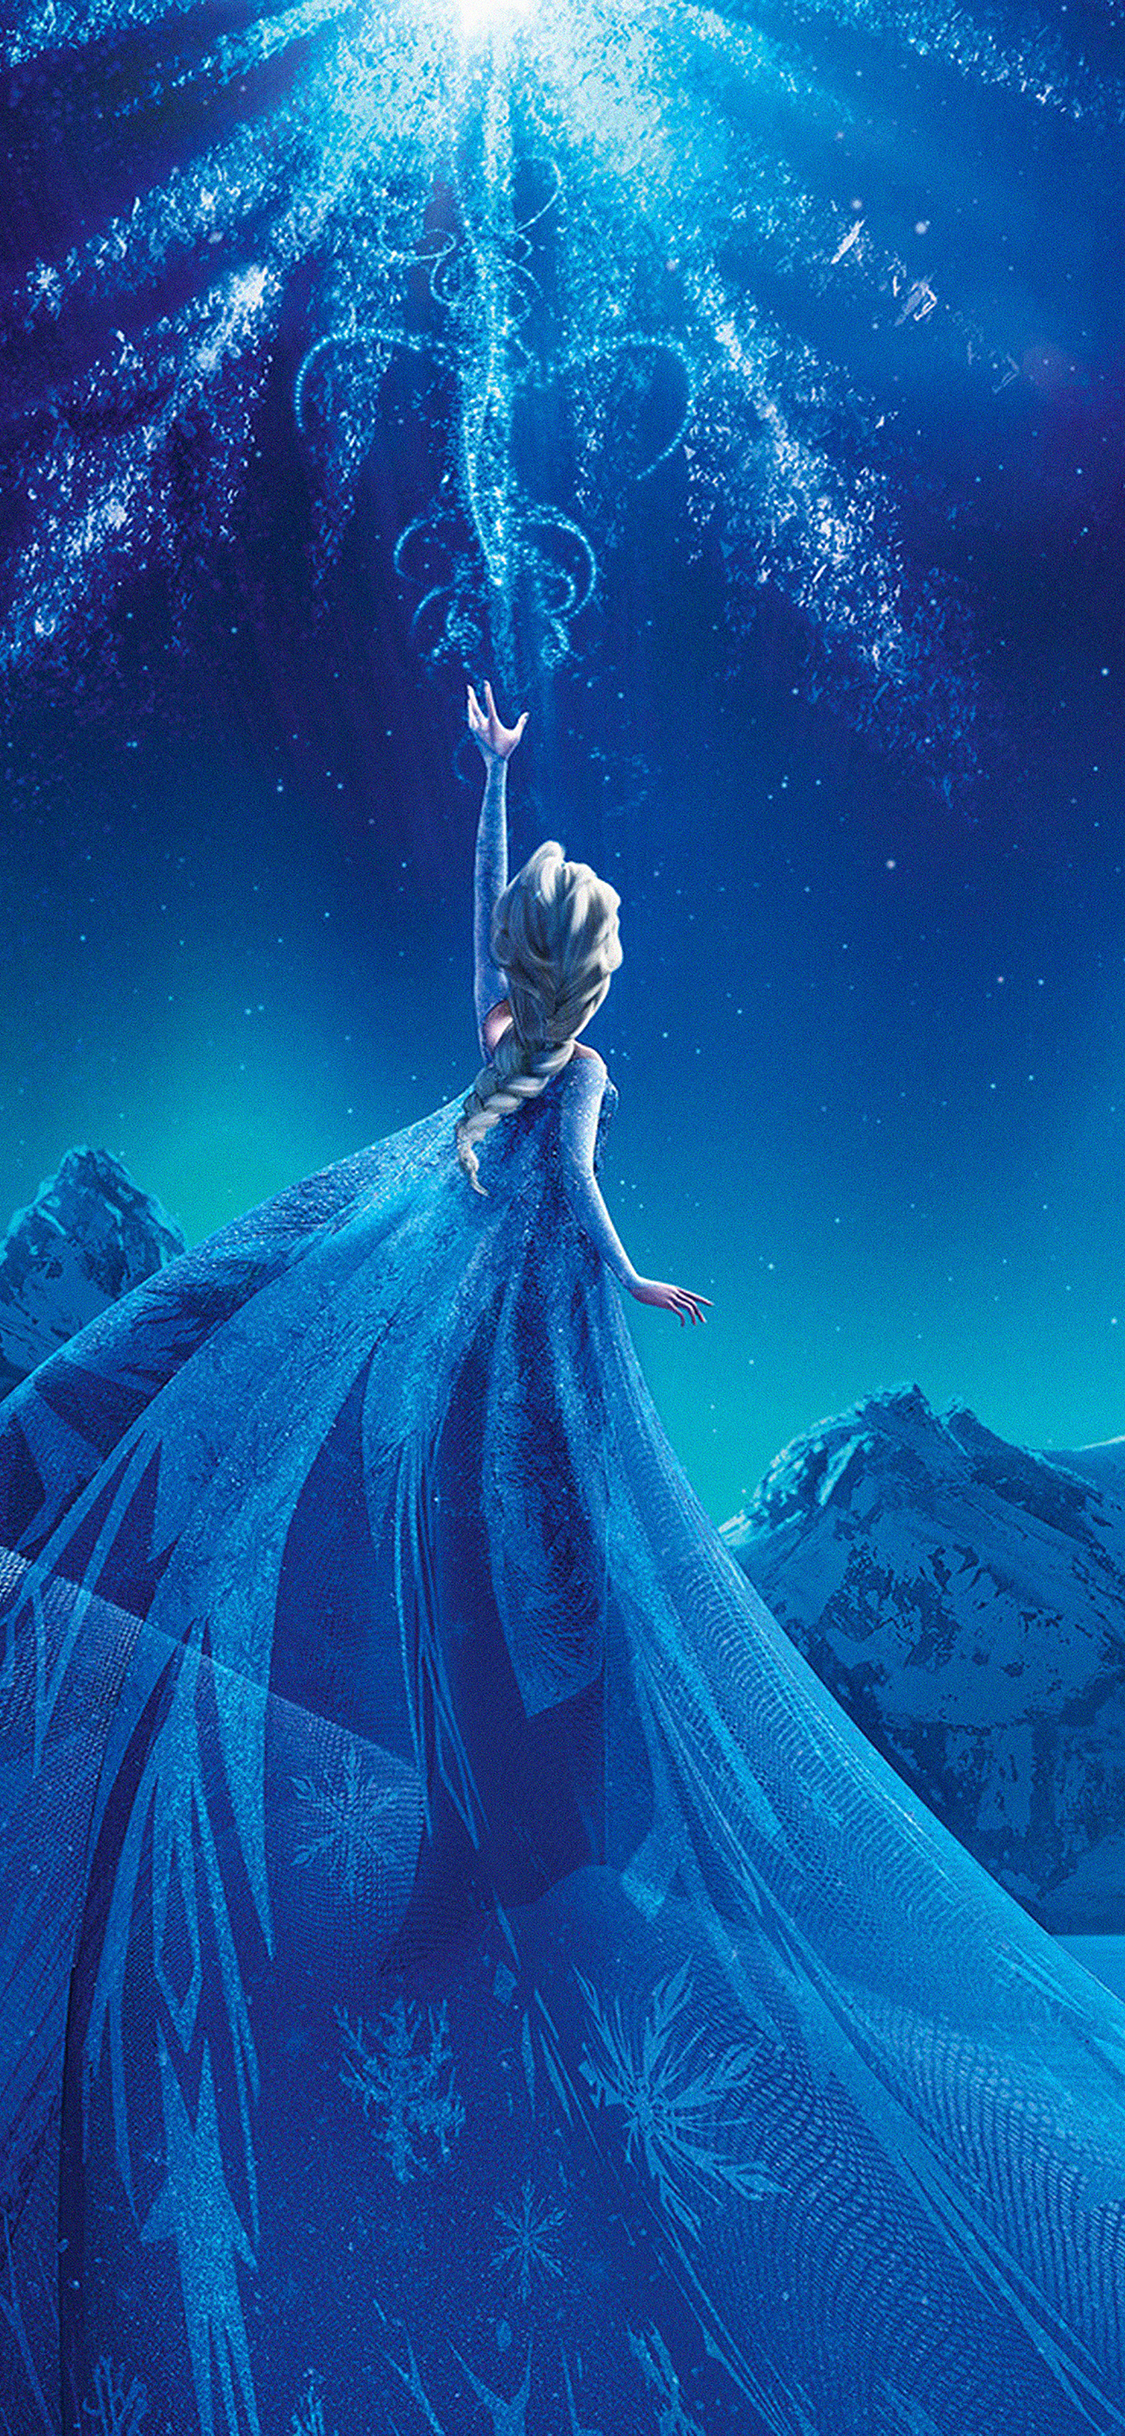 Iphonepapers Ac69 Wallpaper Elsa Frozen Queen Disney